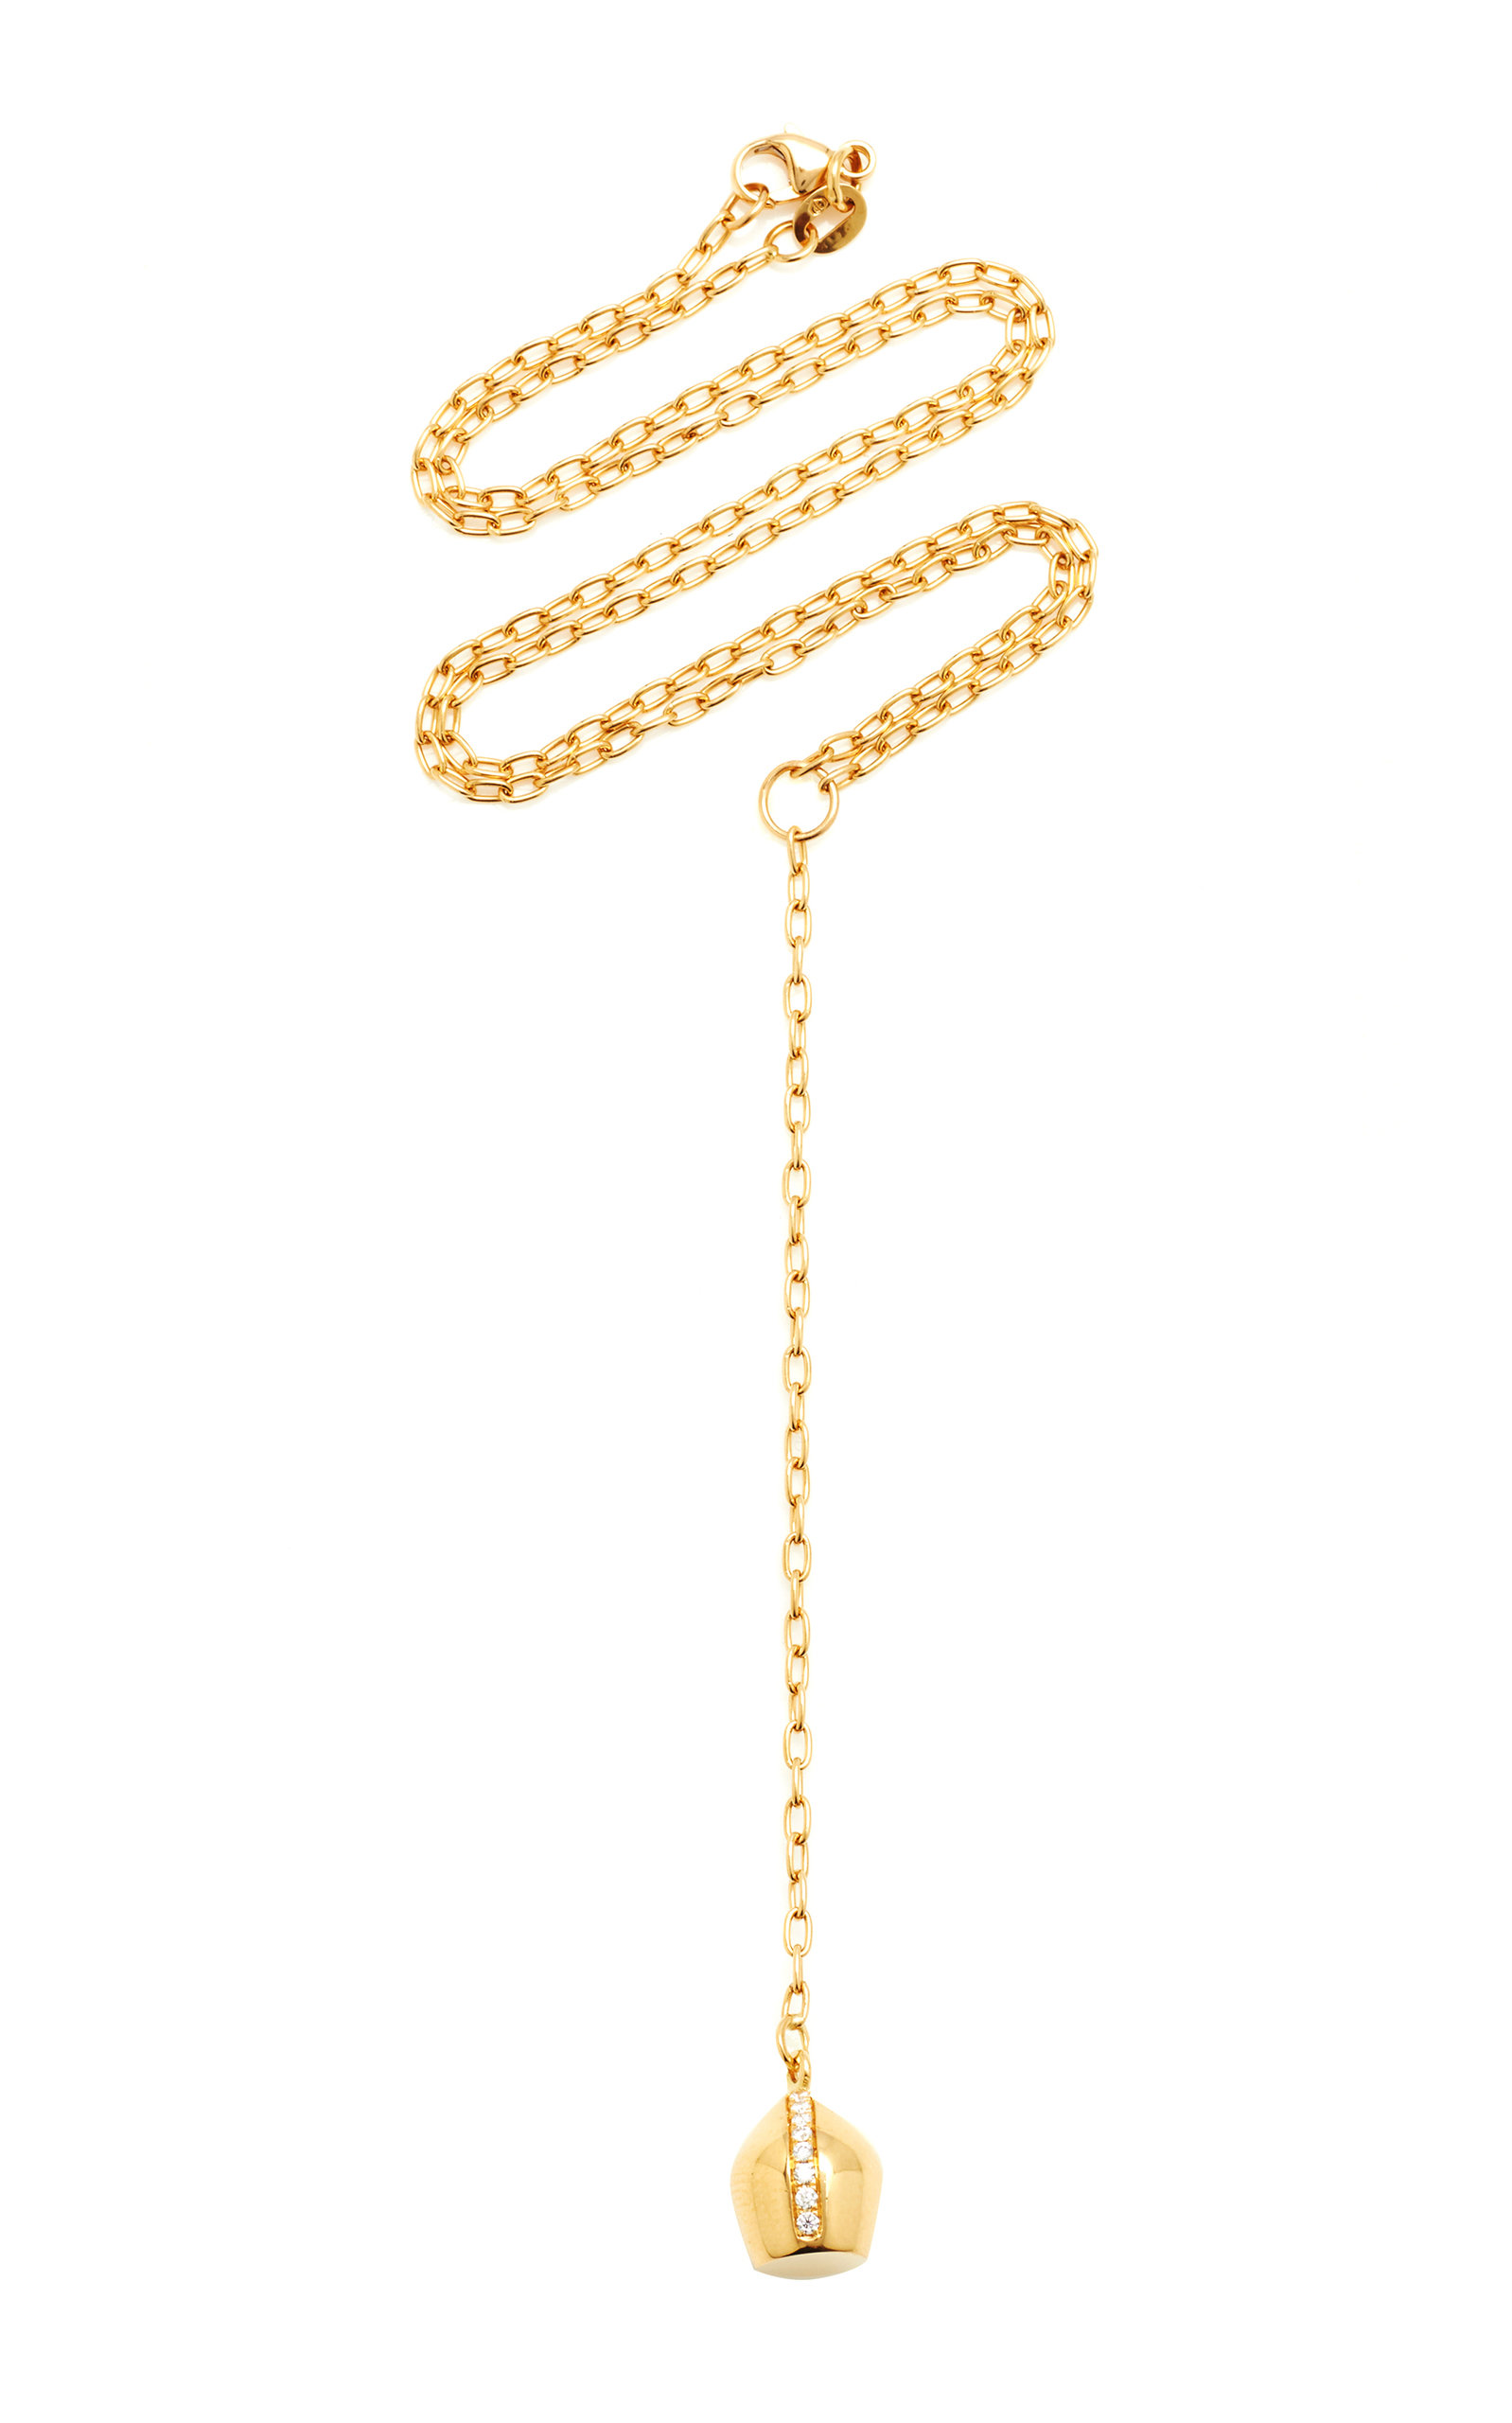 From the 'Nacres des Lunes' collection, Haute Victoire's necklace takes inspiration from the brillia